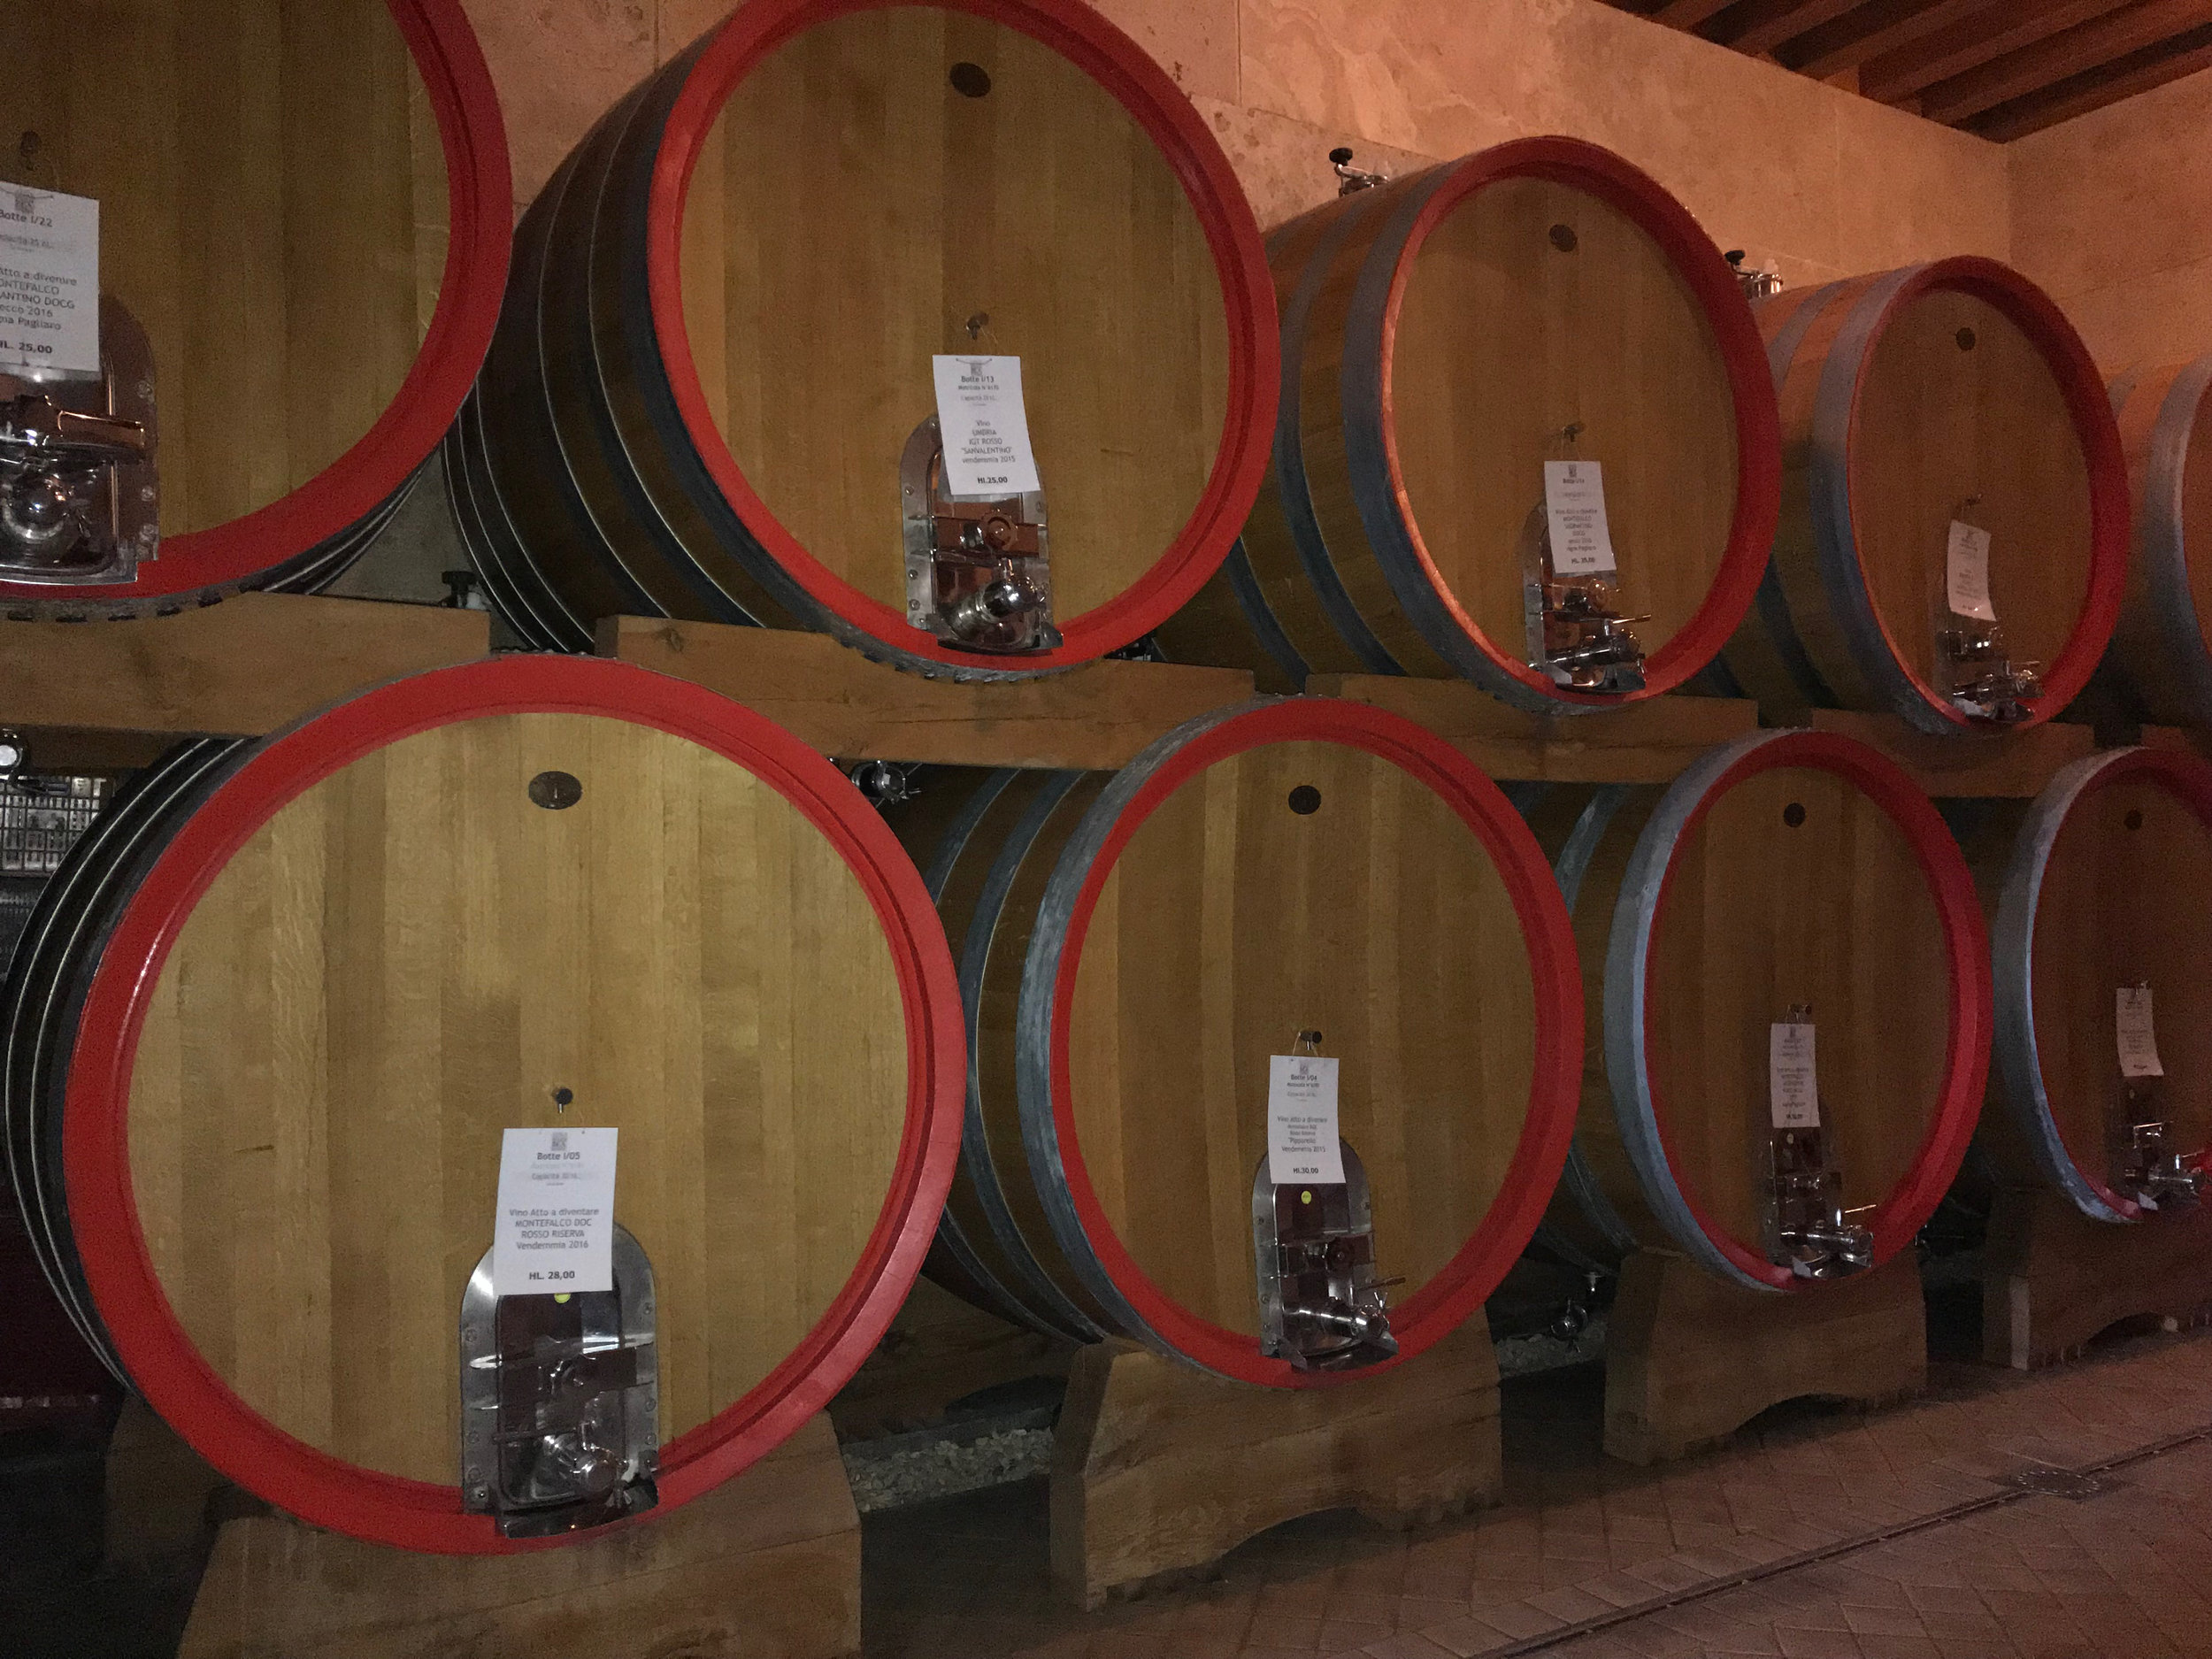 Wines maturing at Paolo Bea.